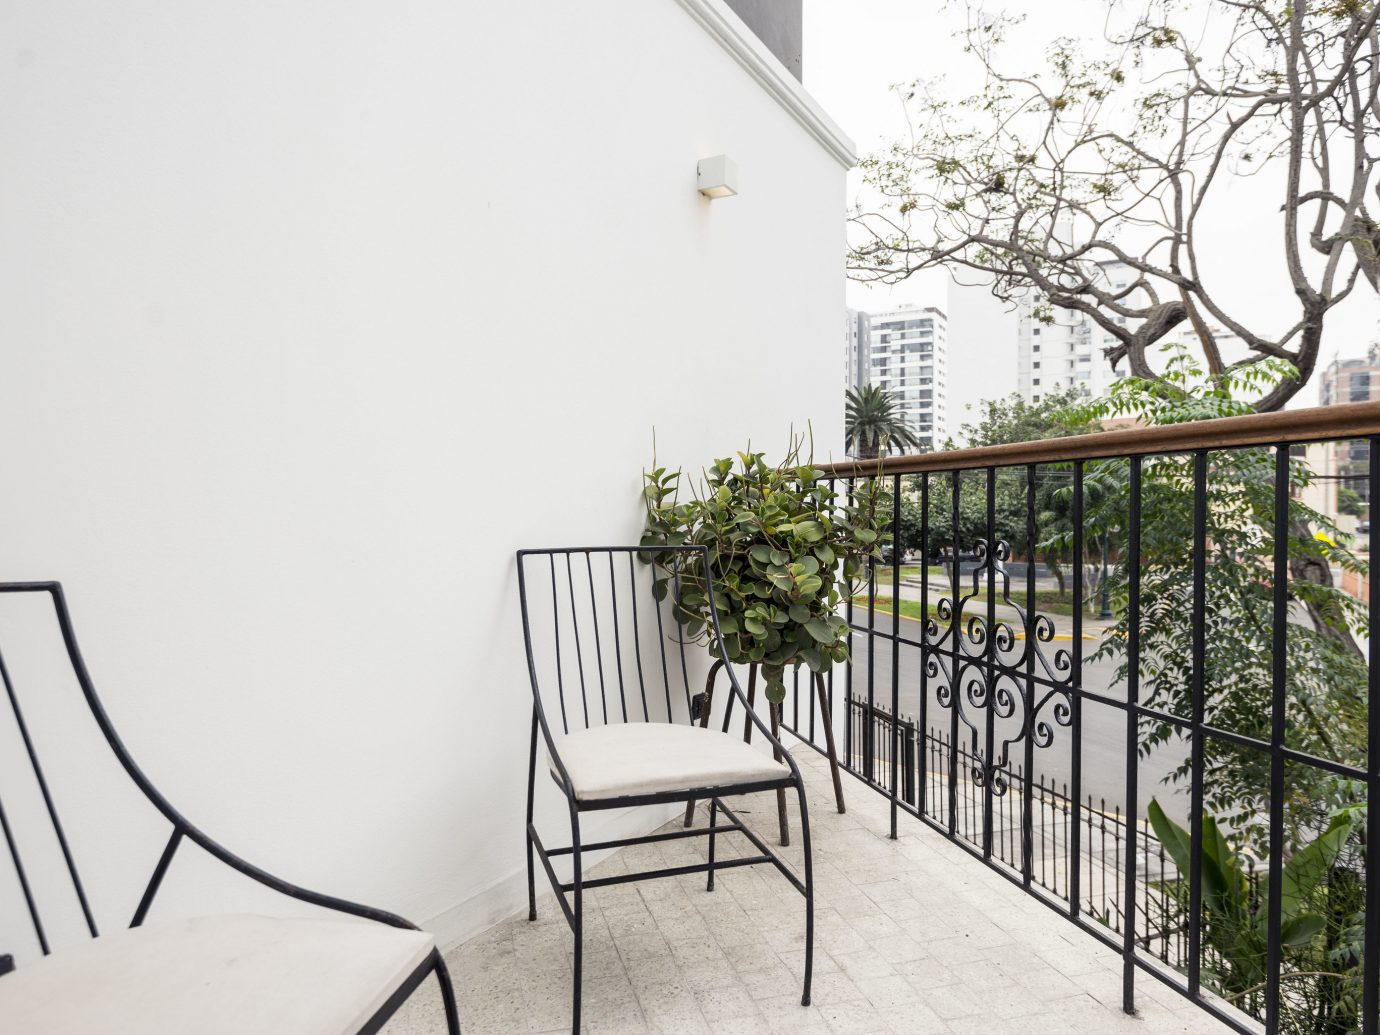 Boutique Hotels Hotels property handrail building Balcony home house real estate apartment chair tree outdoor structure stairs estate window furniture Fence plant area